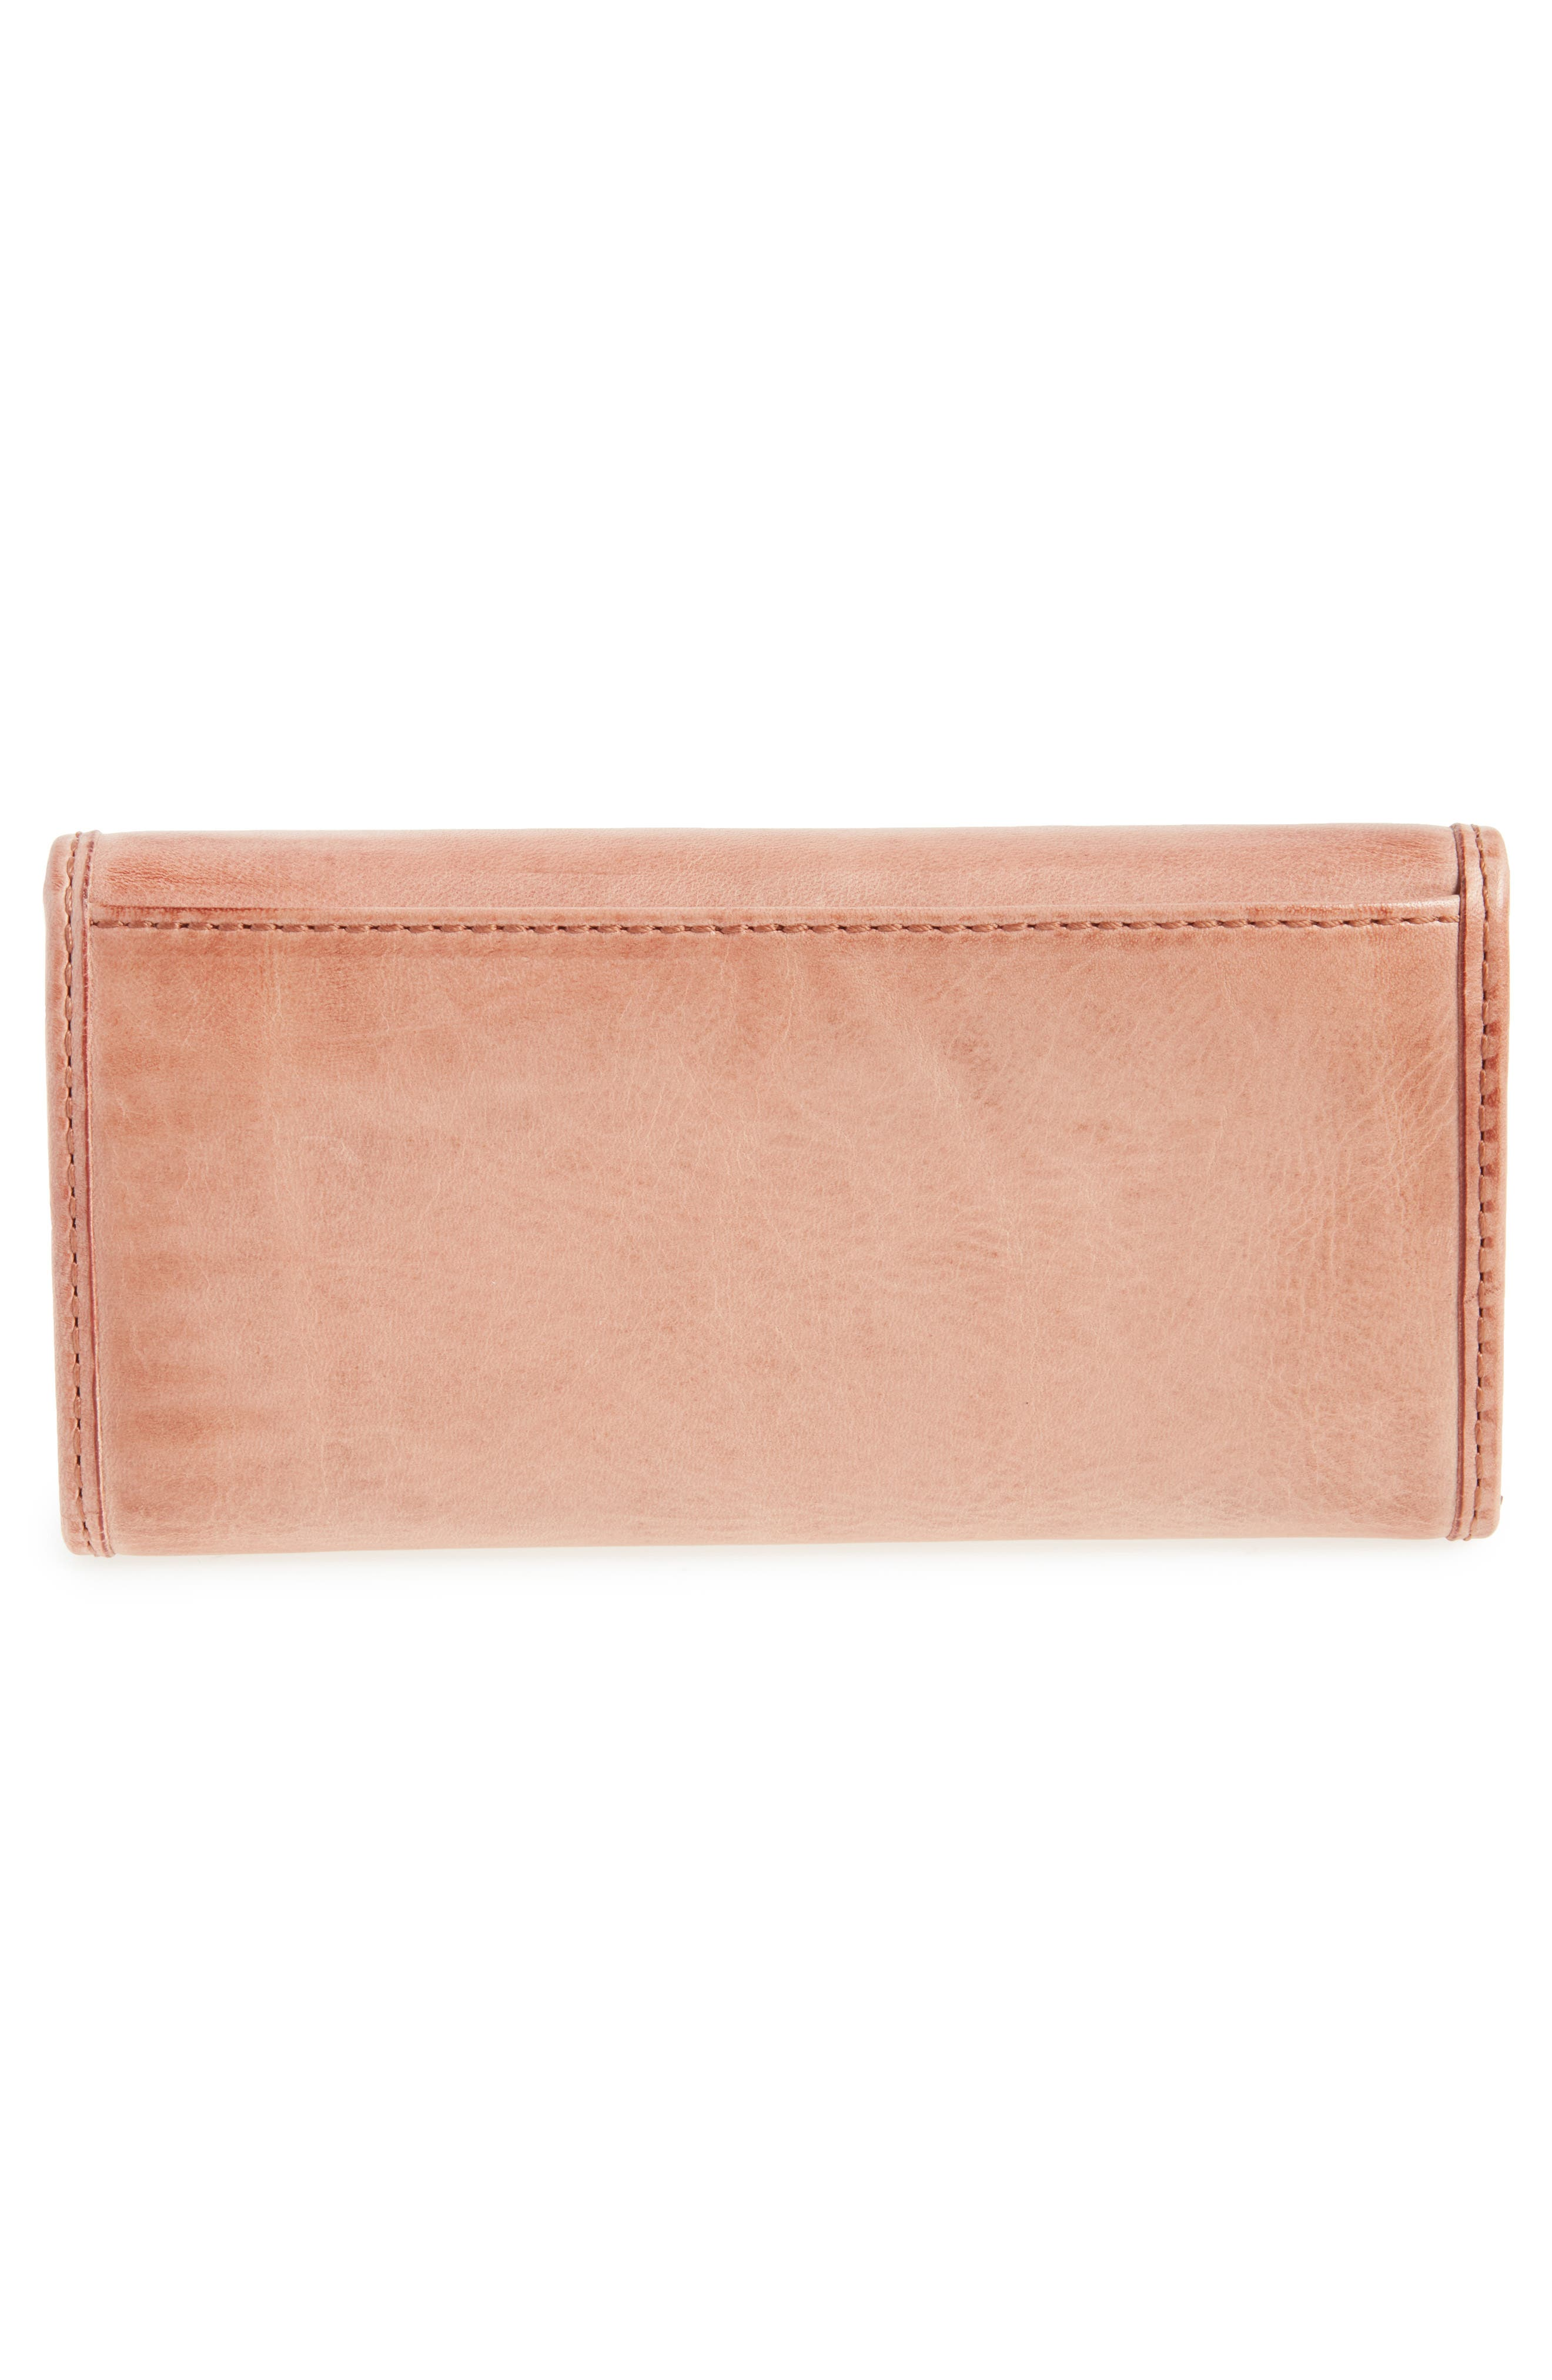 'Melissa' Continental Wallet,                             Alternate thumbnail 3, color,                             DUSTY ROSE